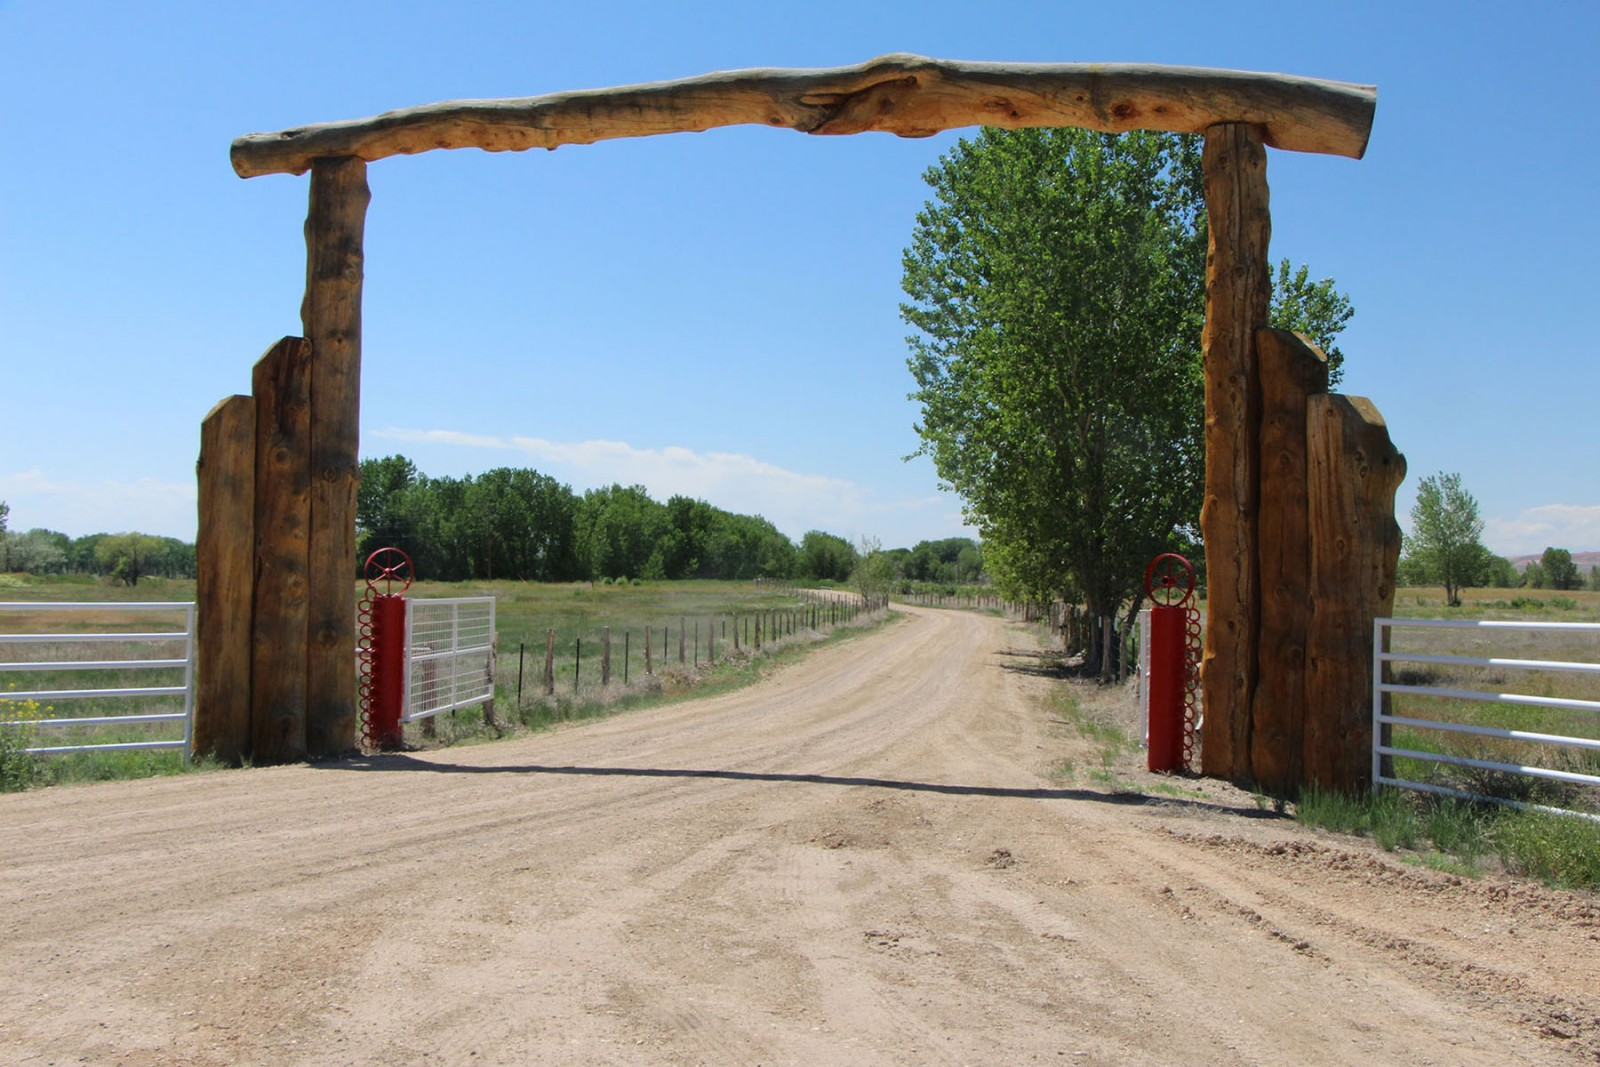 wilford brimley wyoming ranch entrance